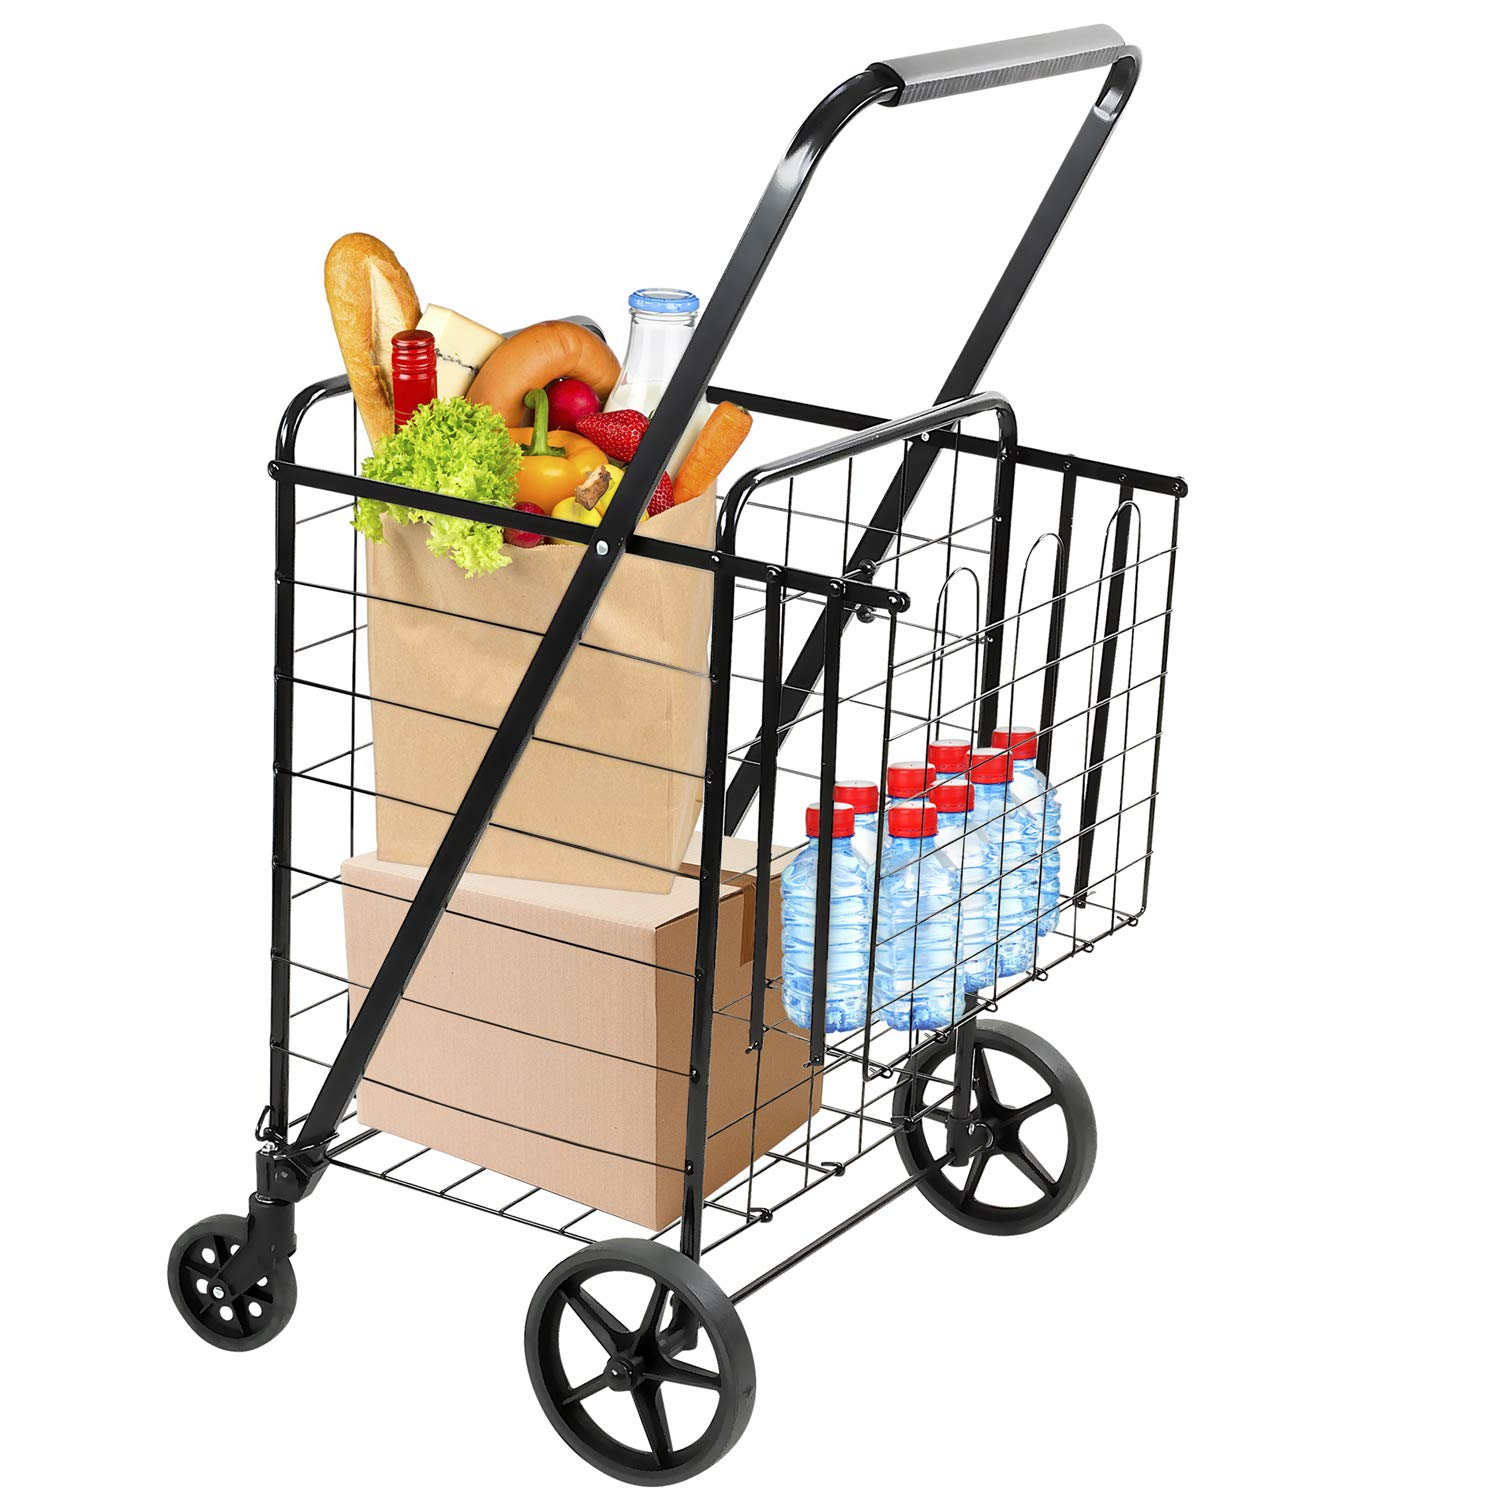 Mount-It! Rolling Utility Shopping Cart for Groceries and Other Supplies - Portable Grocery Cart with Double Baskets and Dual Swiveling Wheels - Lightweight Durable Metal Construction, Weighs 12 lbs by Mount-It!